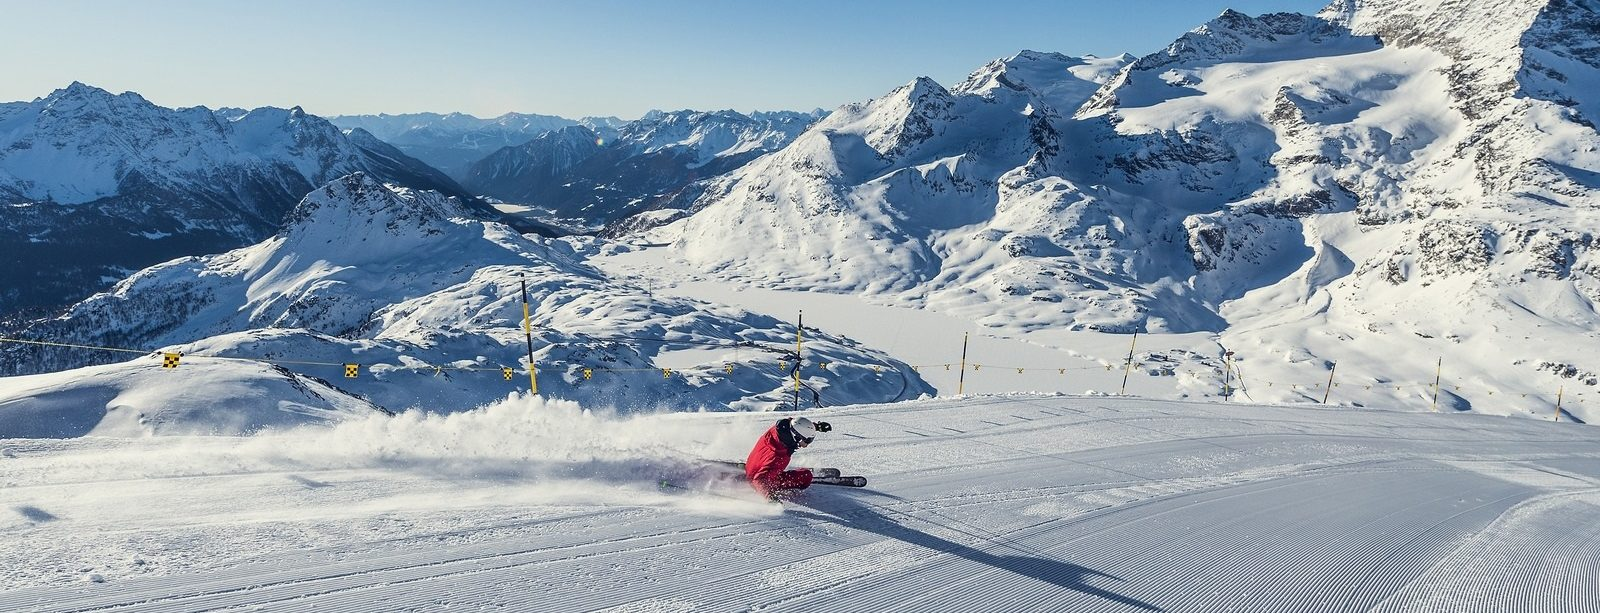 Skier carving, with the snow-covered Lago Bianco and the Poschiavo valley in the background.